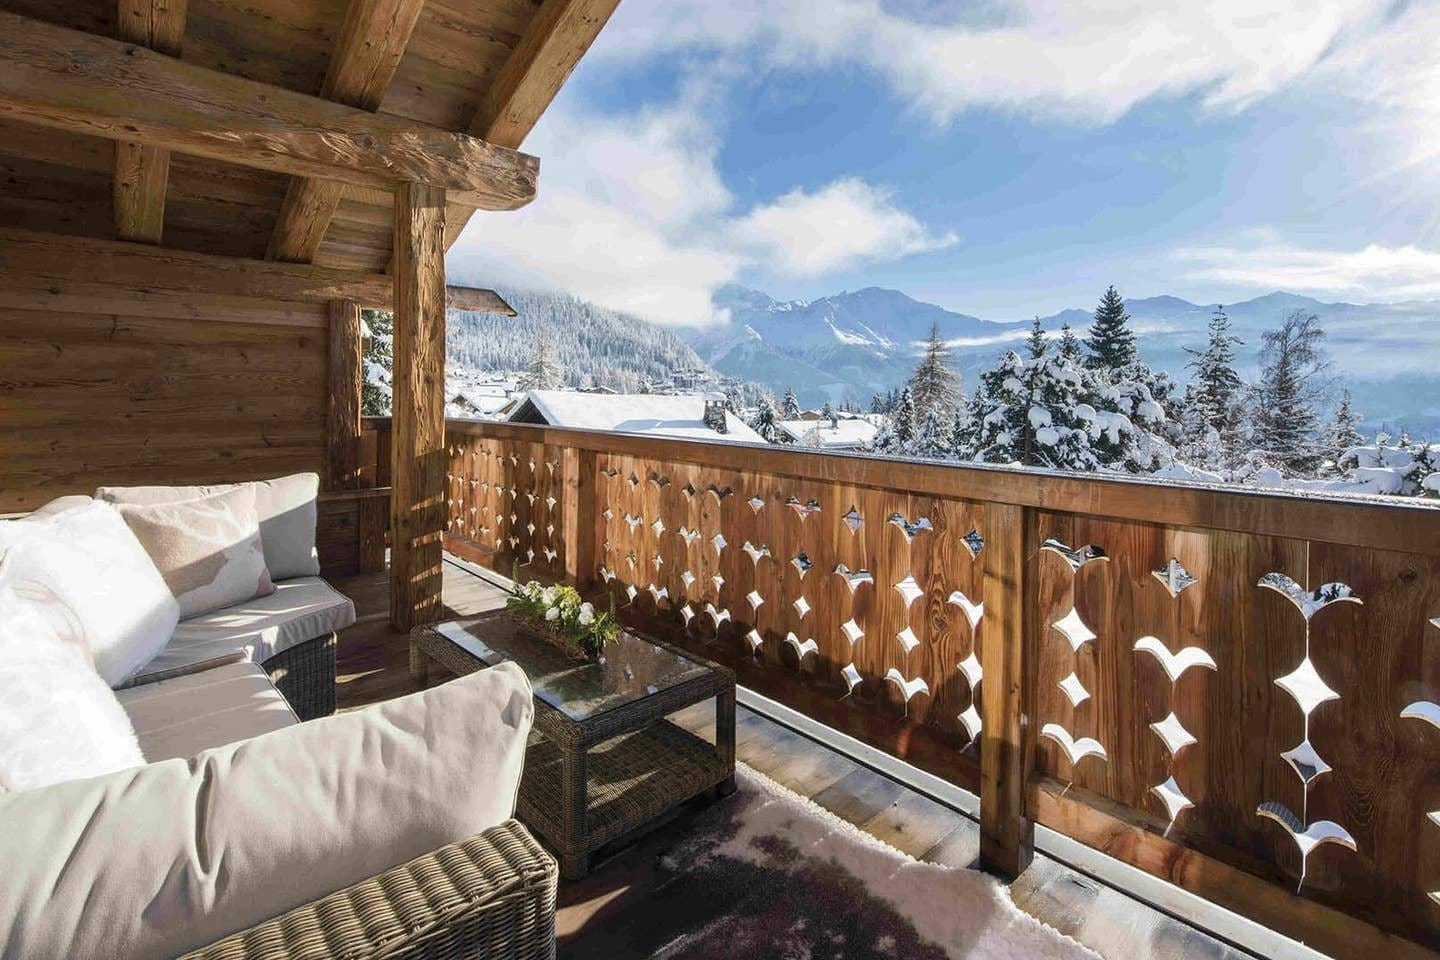 Property Image 1 - Spacious 5-bedroom Designer Chalet with Views